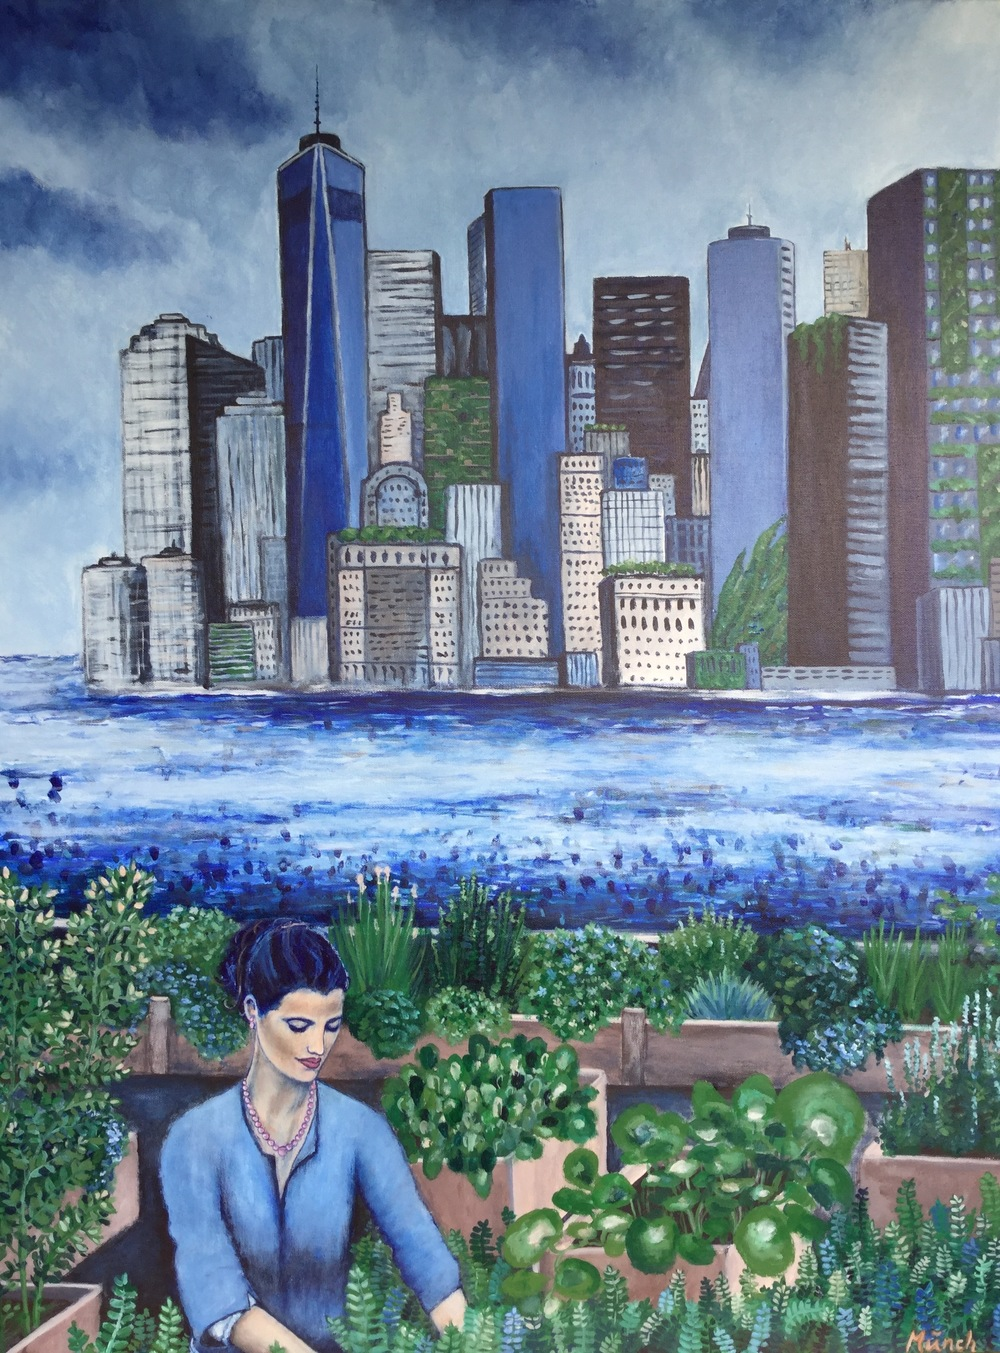 urban gardening, 30''x40'', acrylic on canvas, 2016